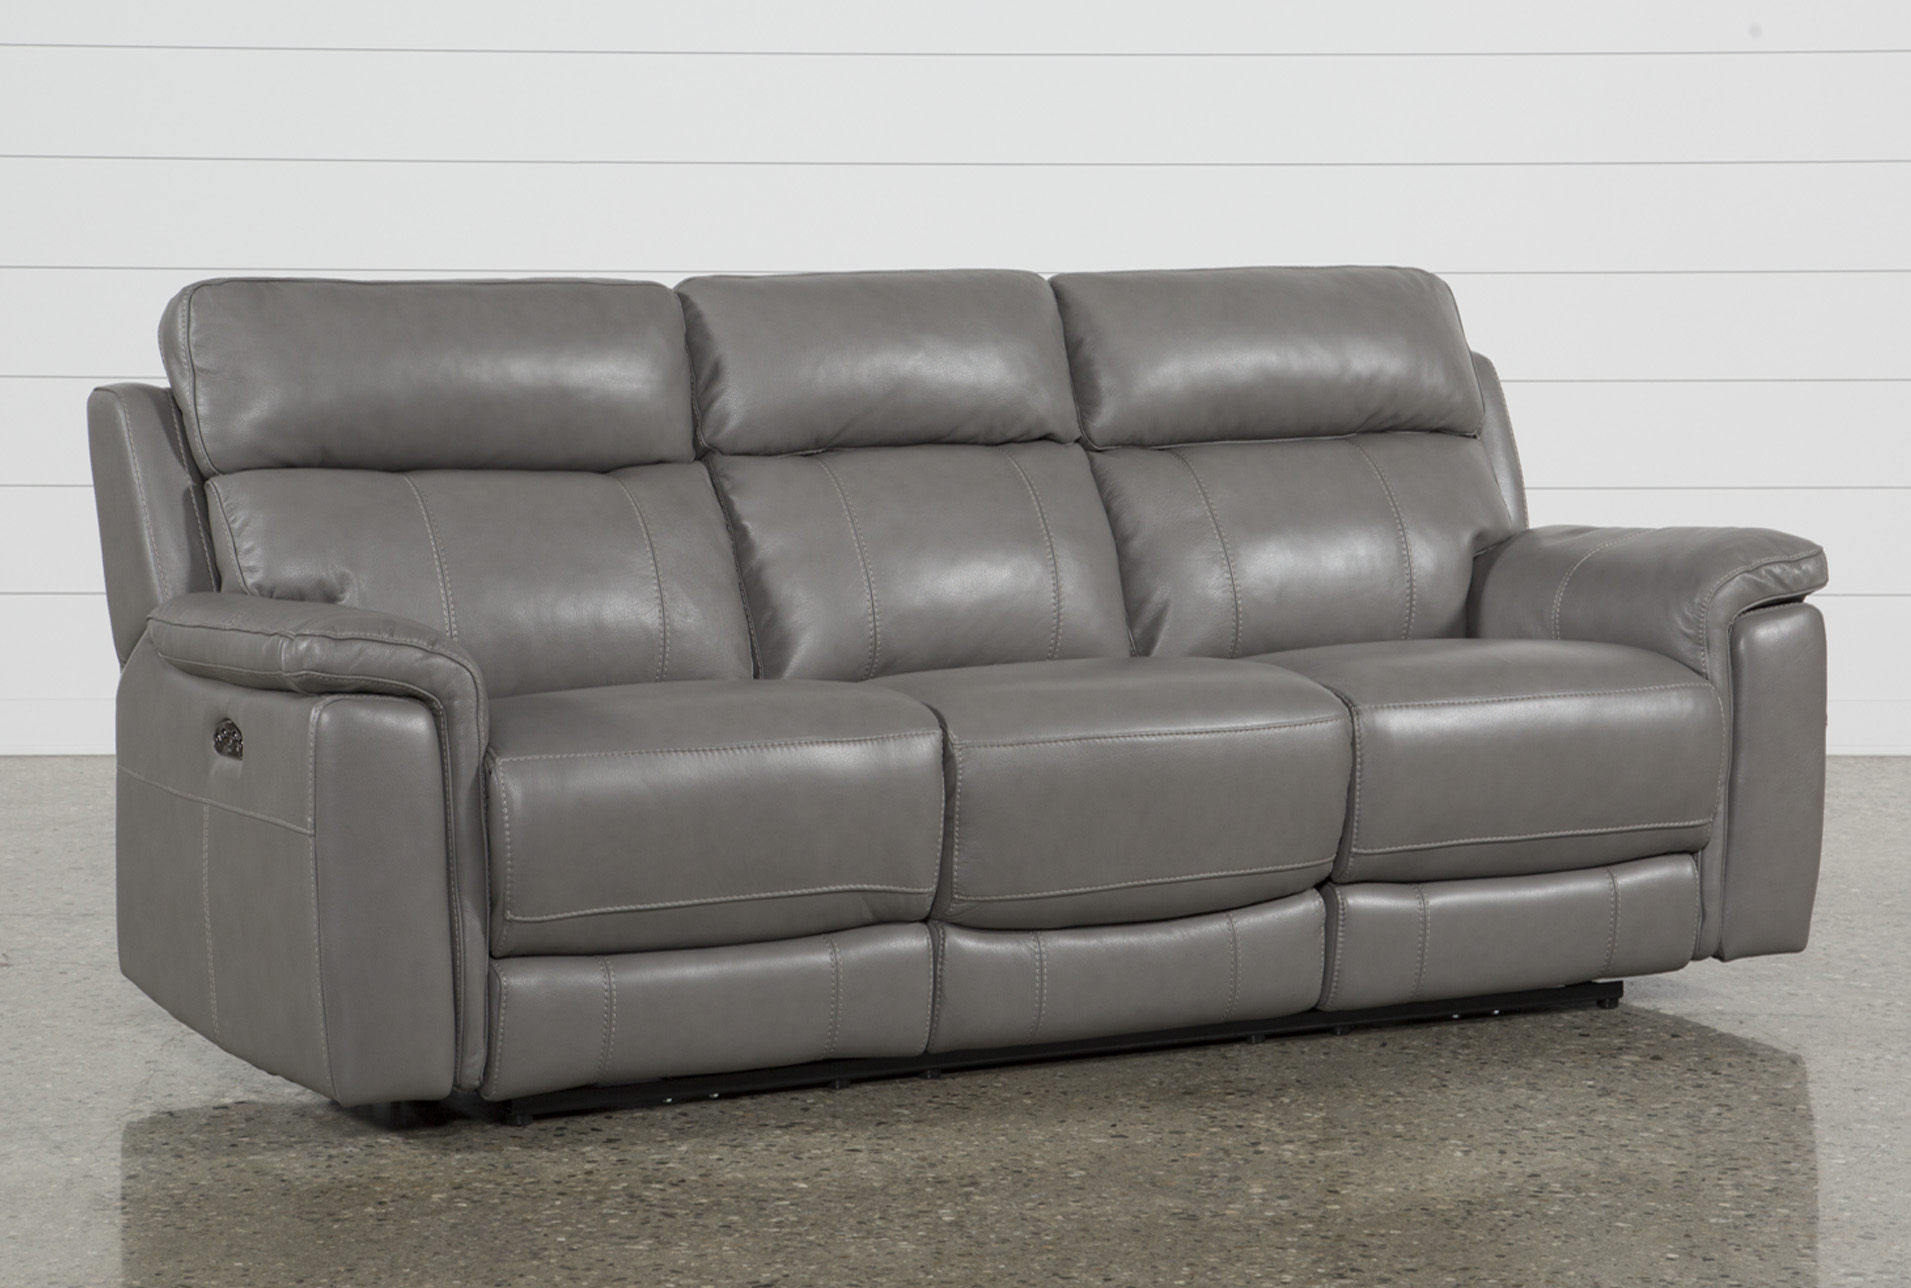 Gray Leather Reclining Sofa Is A Beautiful Selection For